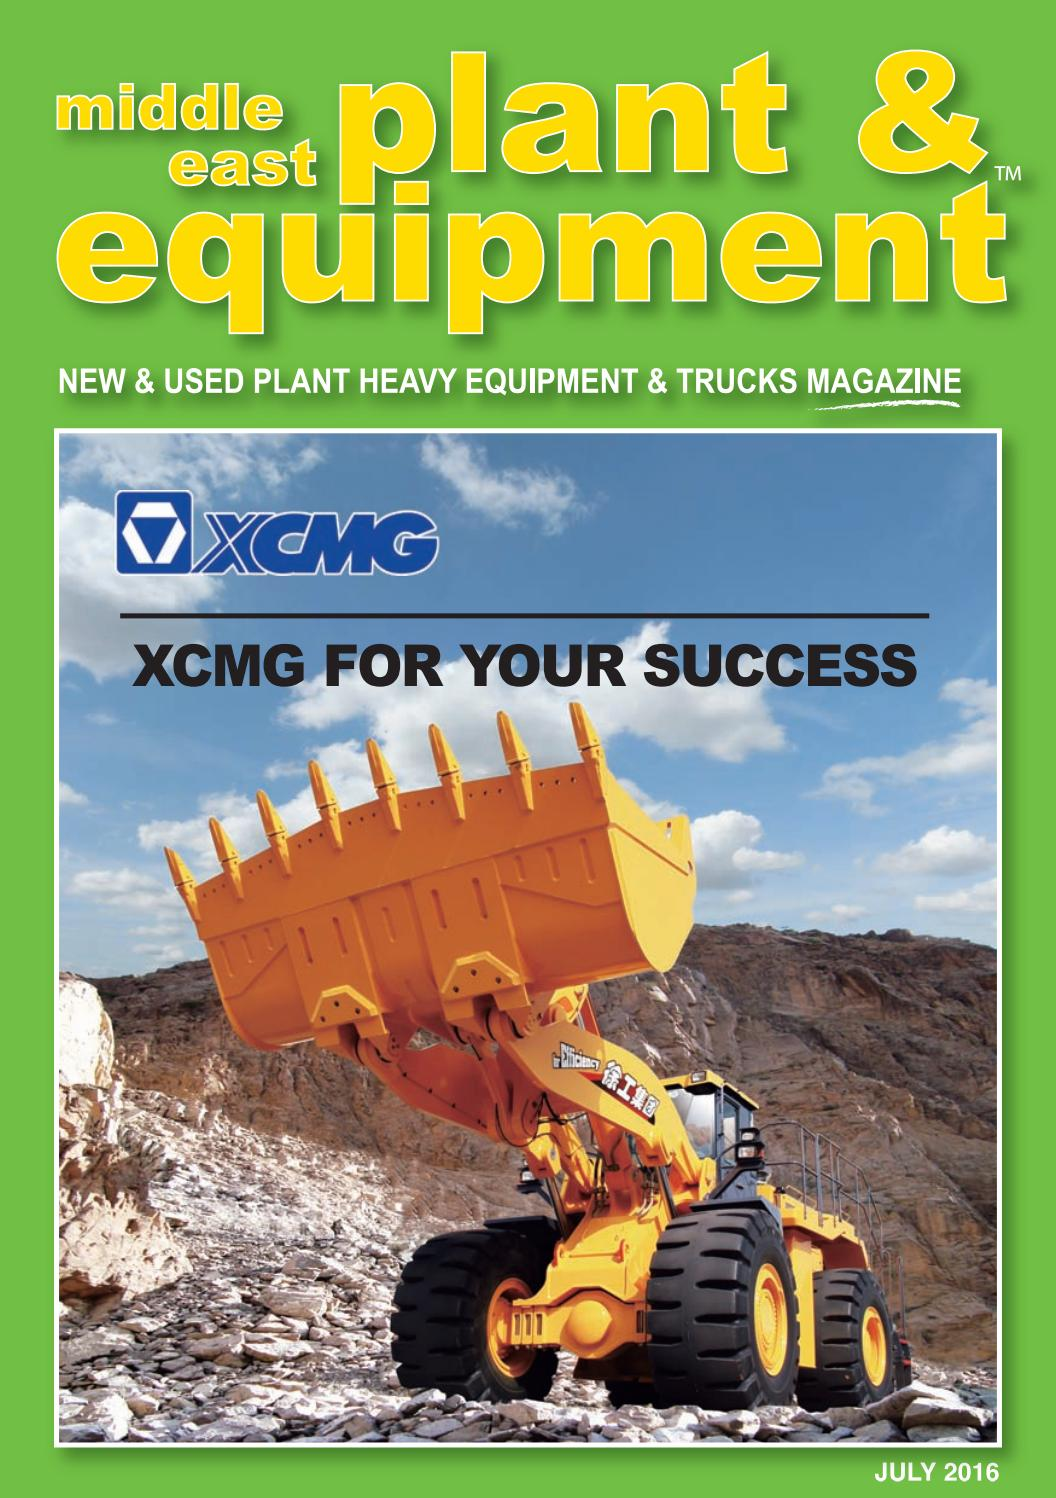 Middle East Plant & Equipment - July 2016 Edition by Middle East